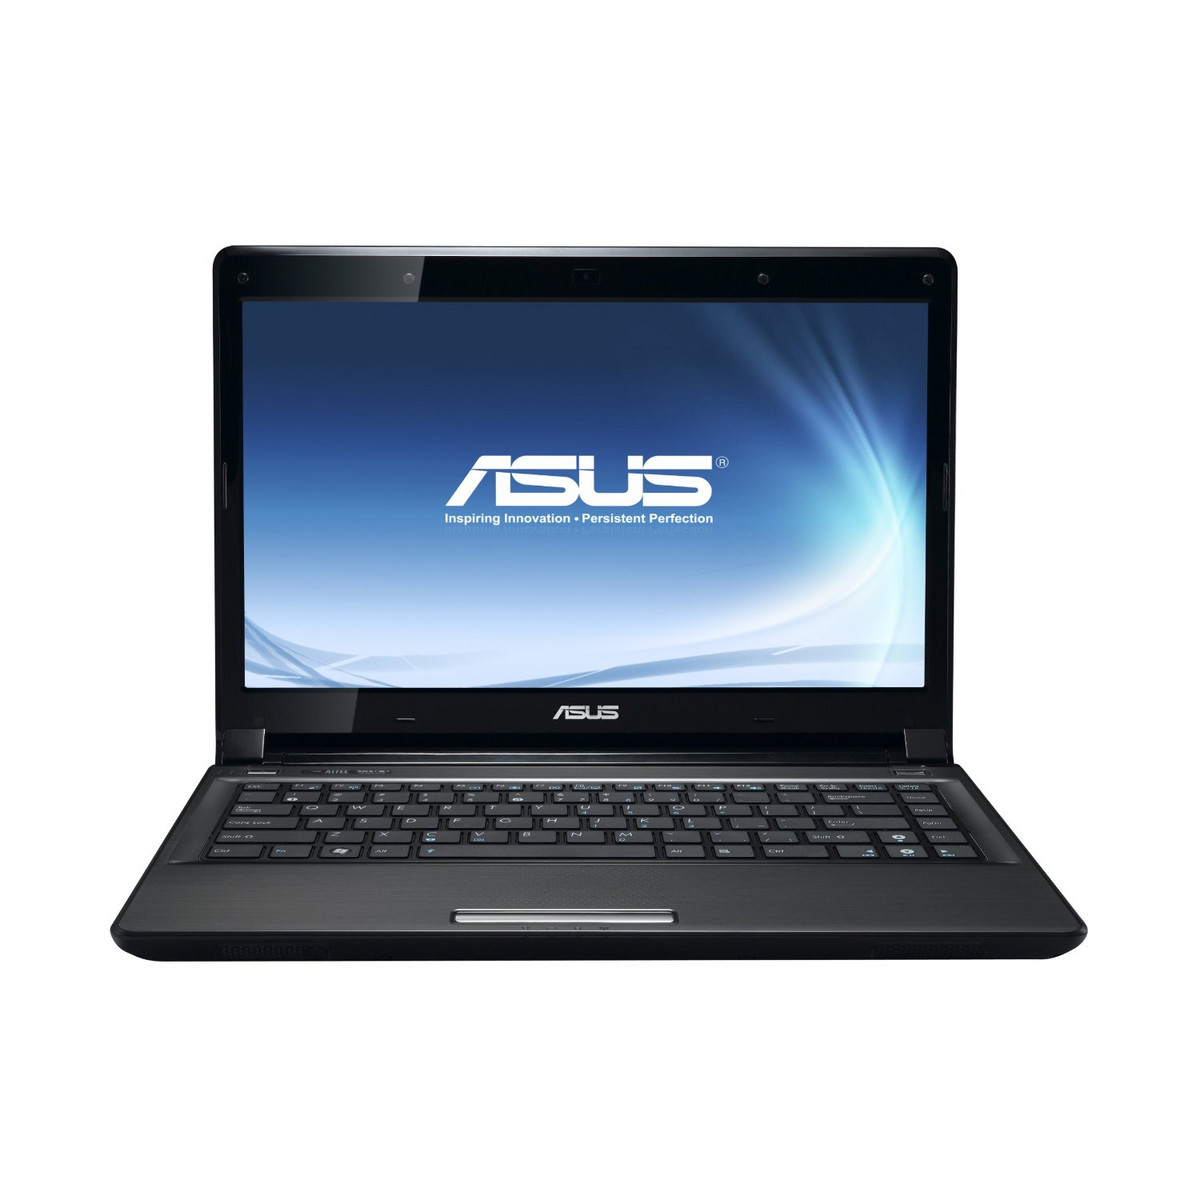 ASUS U43JC NOTEBOOK DOWNLOAD DRIVER